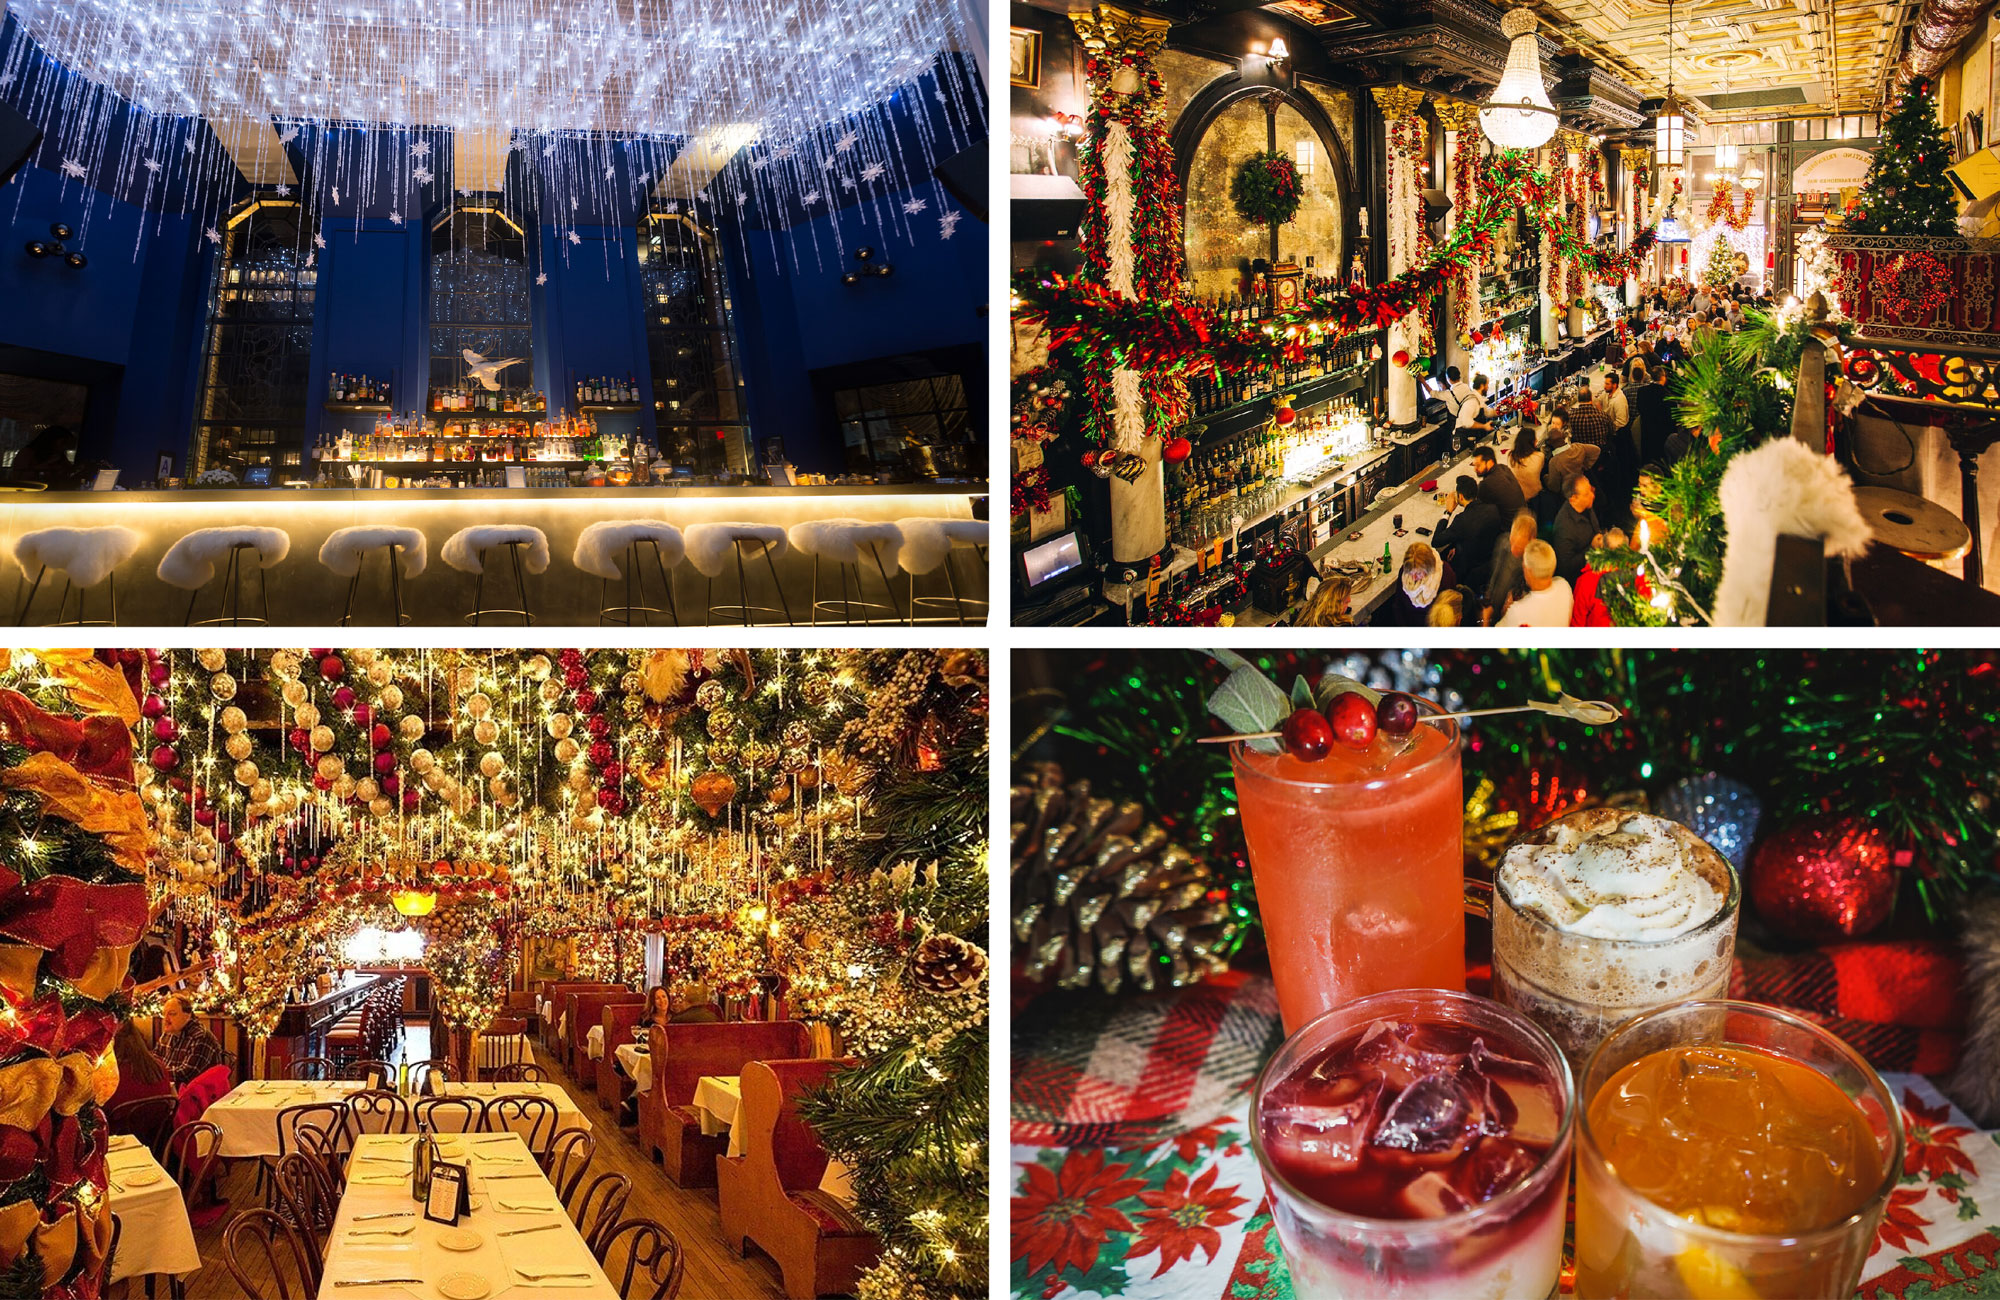 Nyc S 11 Most Festive Bars And Restaurants 6sqft